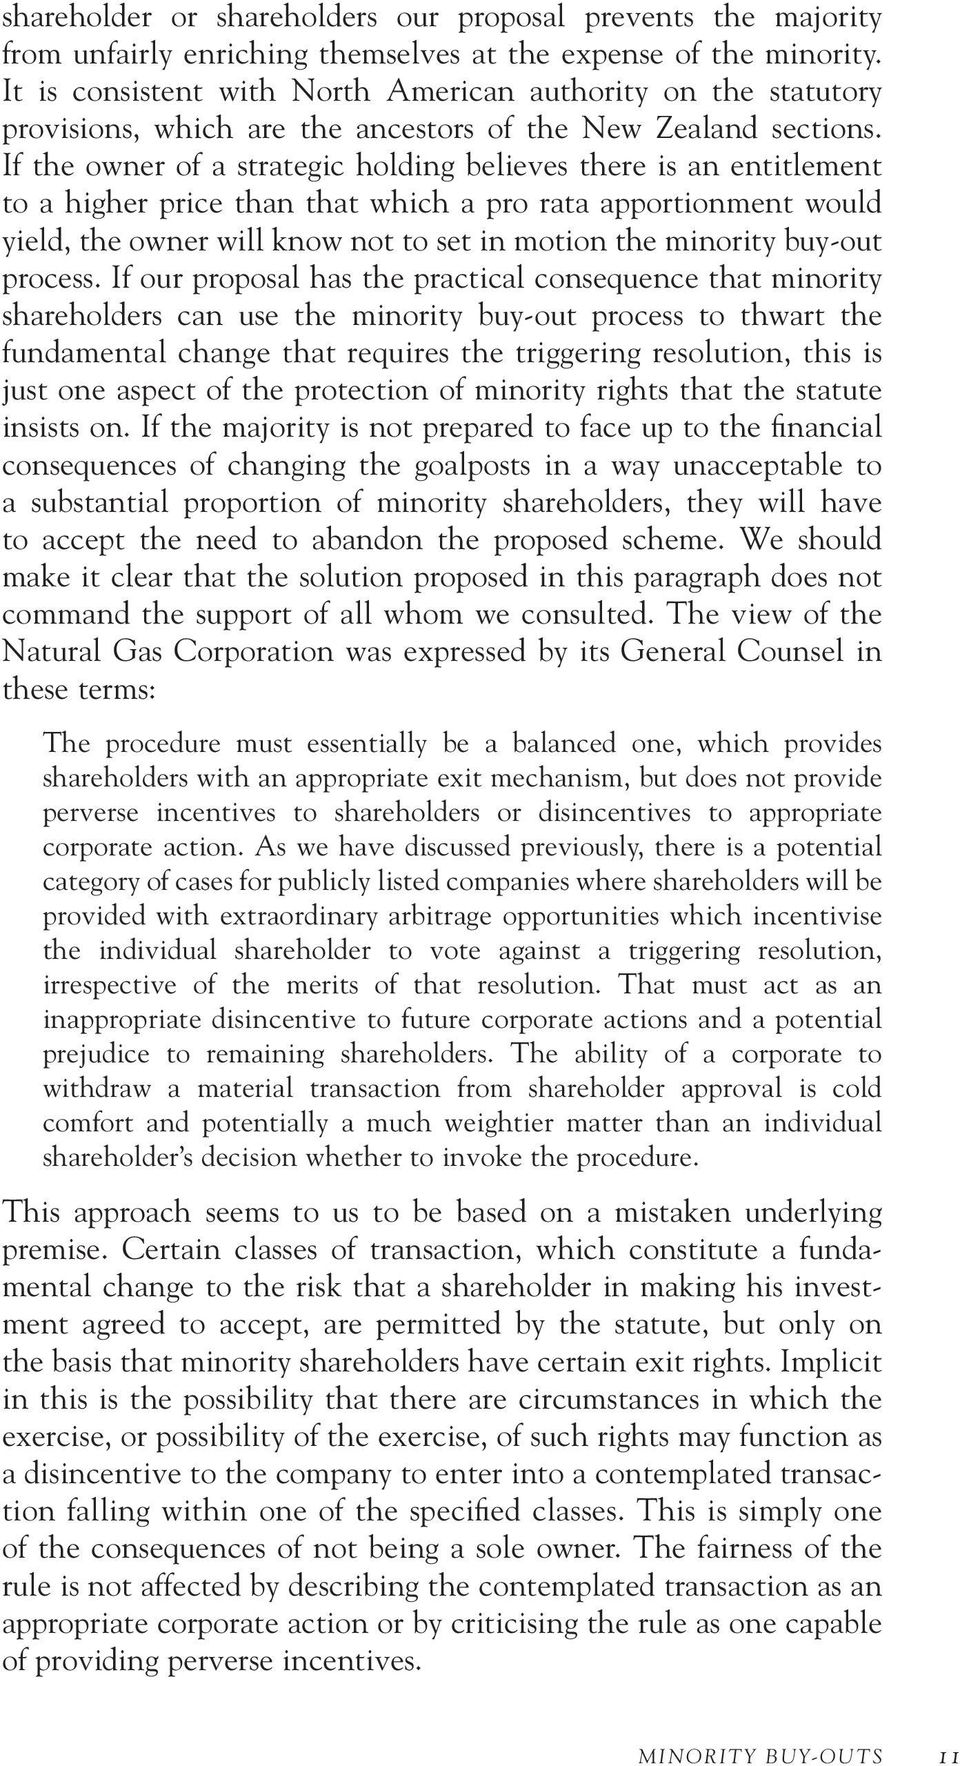 If the owner of a strategic holding believes there is an entitlement to a higher price than that which a pro rata apportionment would yield, the owner will know not to set in motion the minority